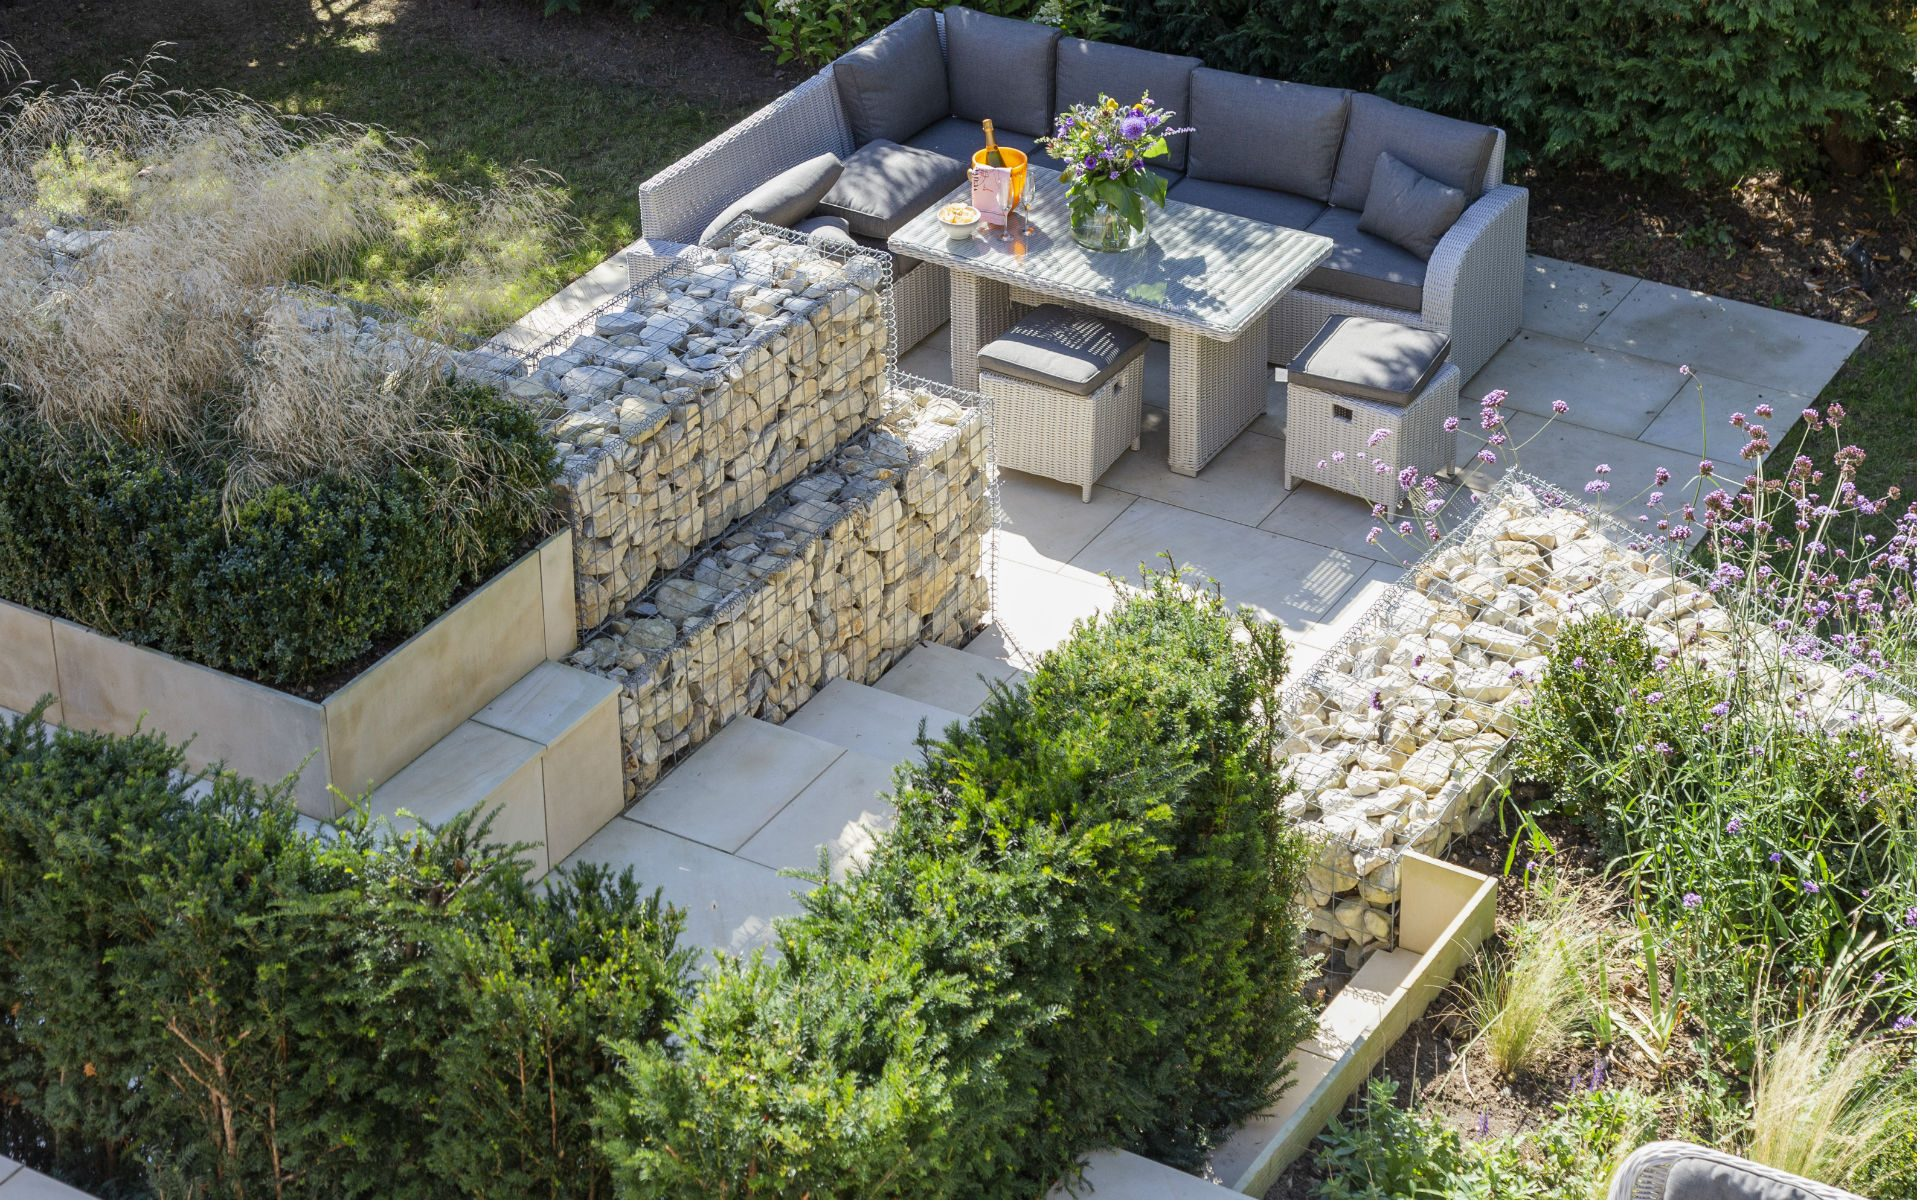 Portfolio Multi-level Landscape Garden Design and Build Lower patio Gabion walls steps